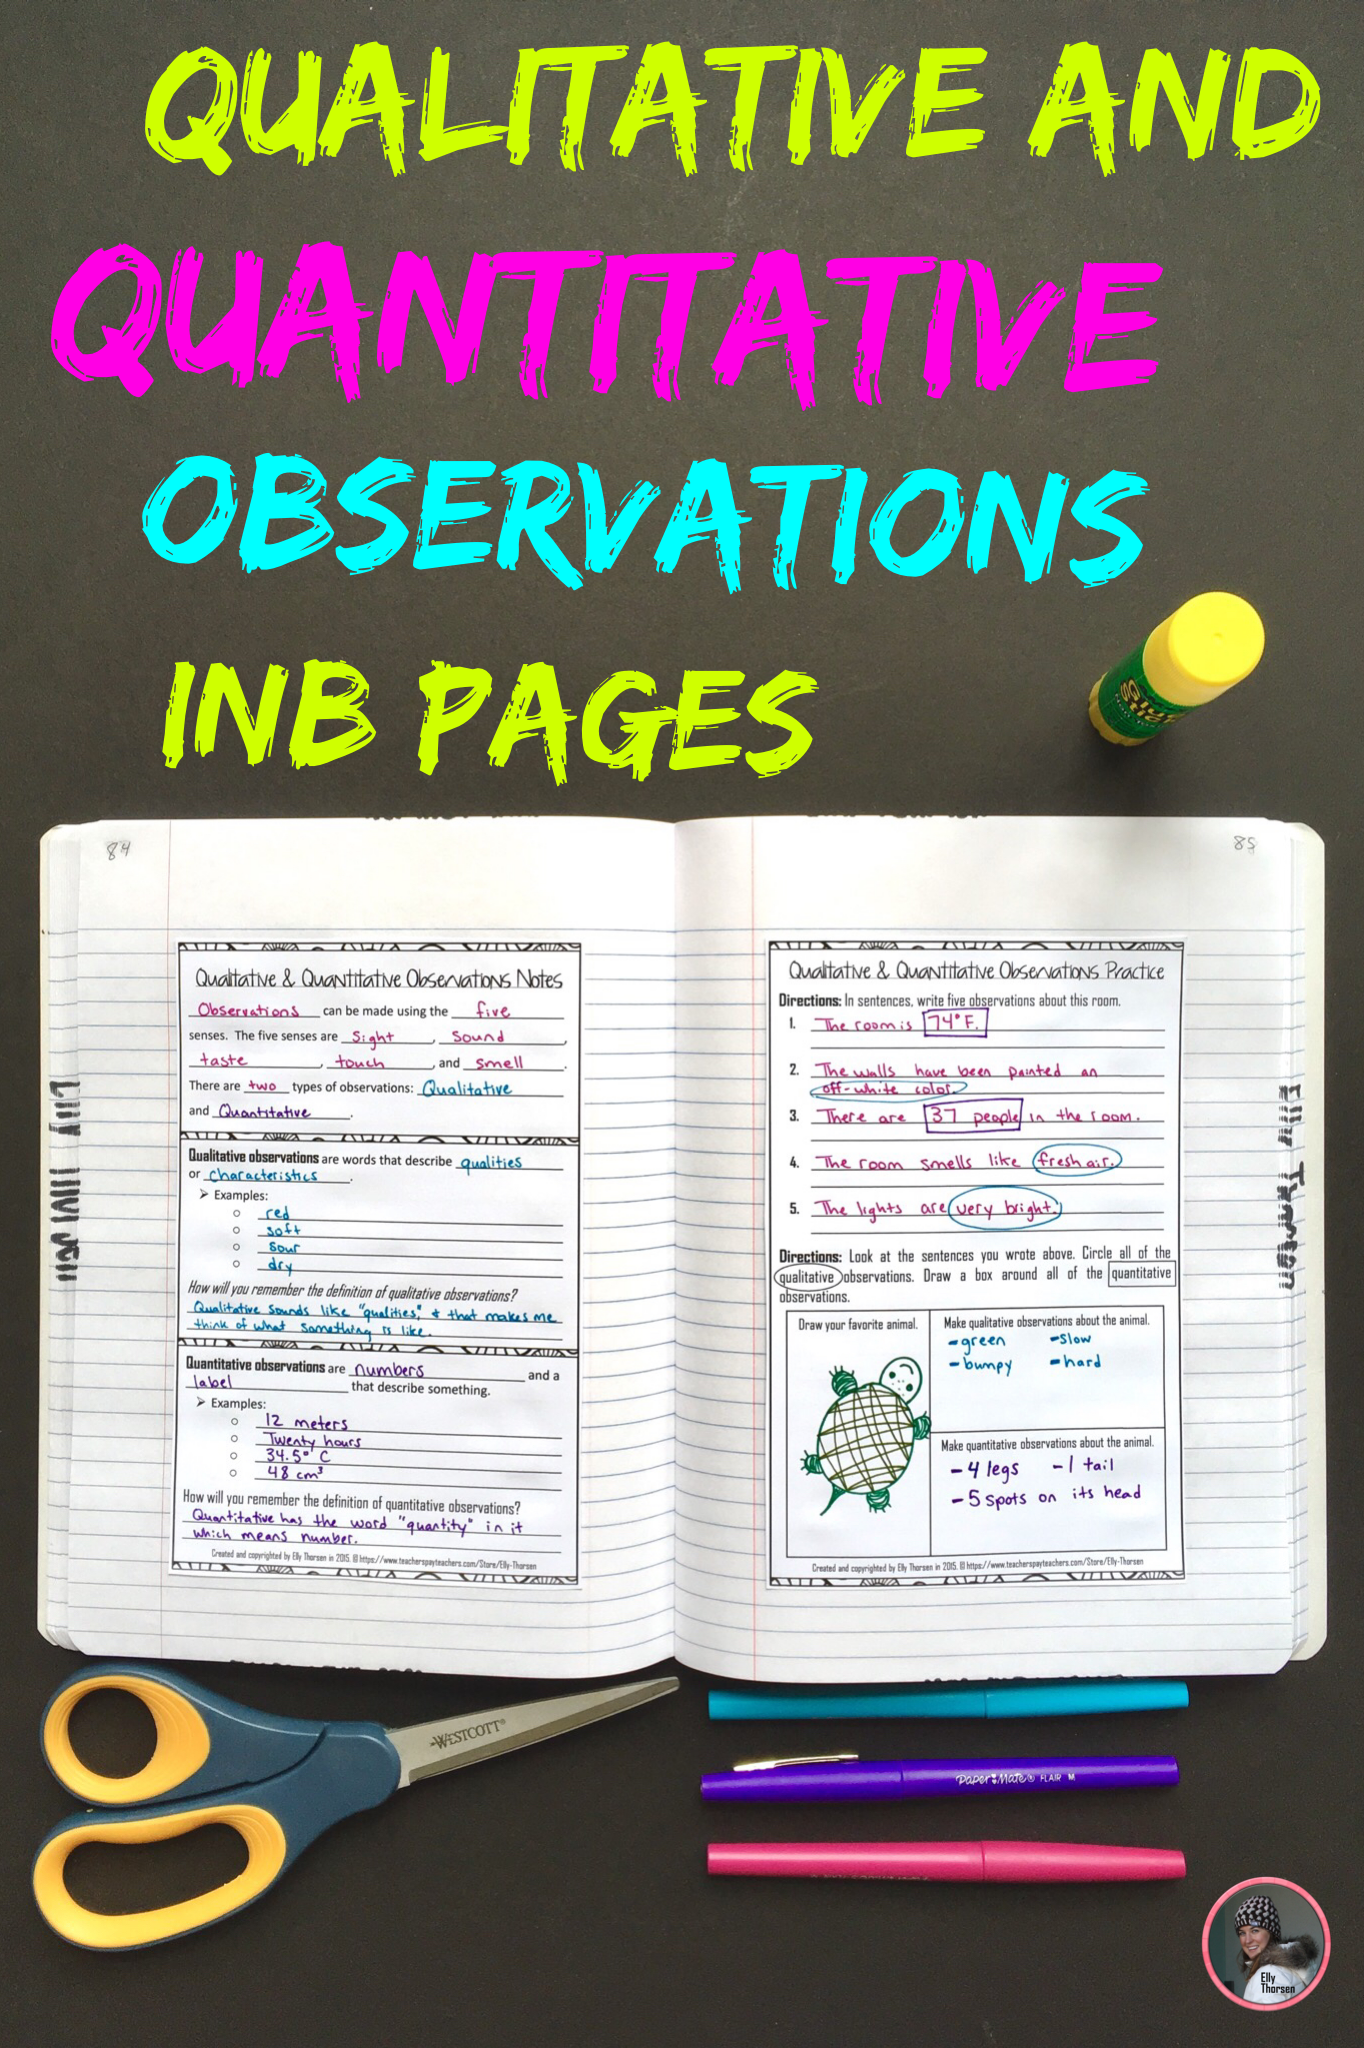 Qualitative And Quantitative Observations Interactive Notebook Pages For Middle School Middle School Science Interactive Notebooks Interactive Science Notebook